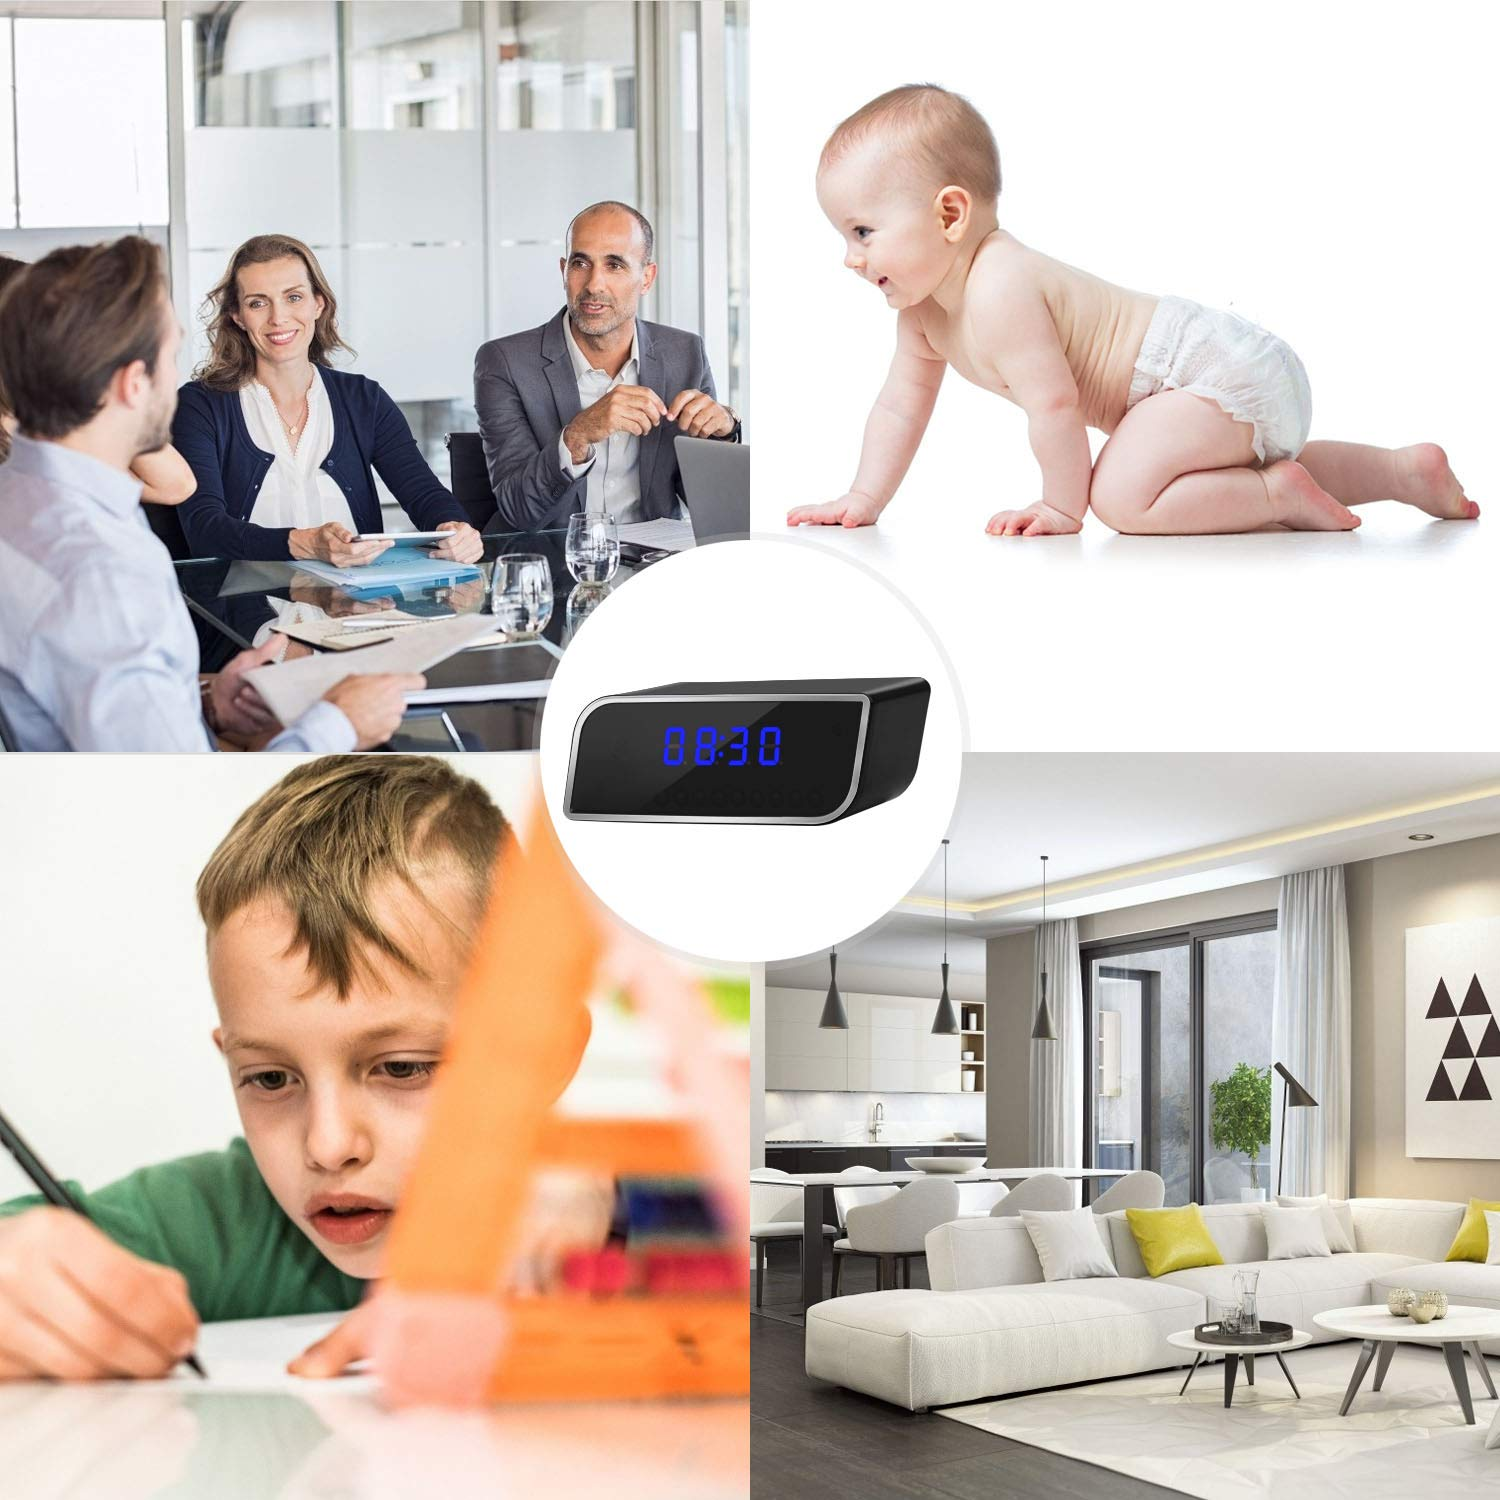 can be viewed remotely Through APP Alarm Camera Clock Wireless WiFi Camera 1080P Clock Camera with Night Vision Function and Motion Detection Angle Suitable for Home Security